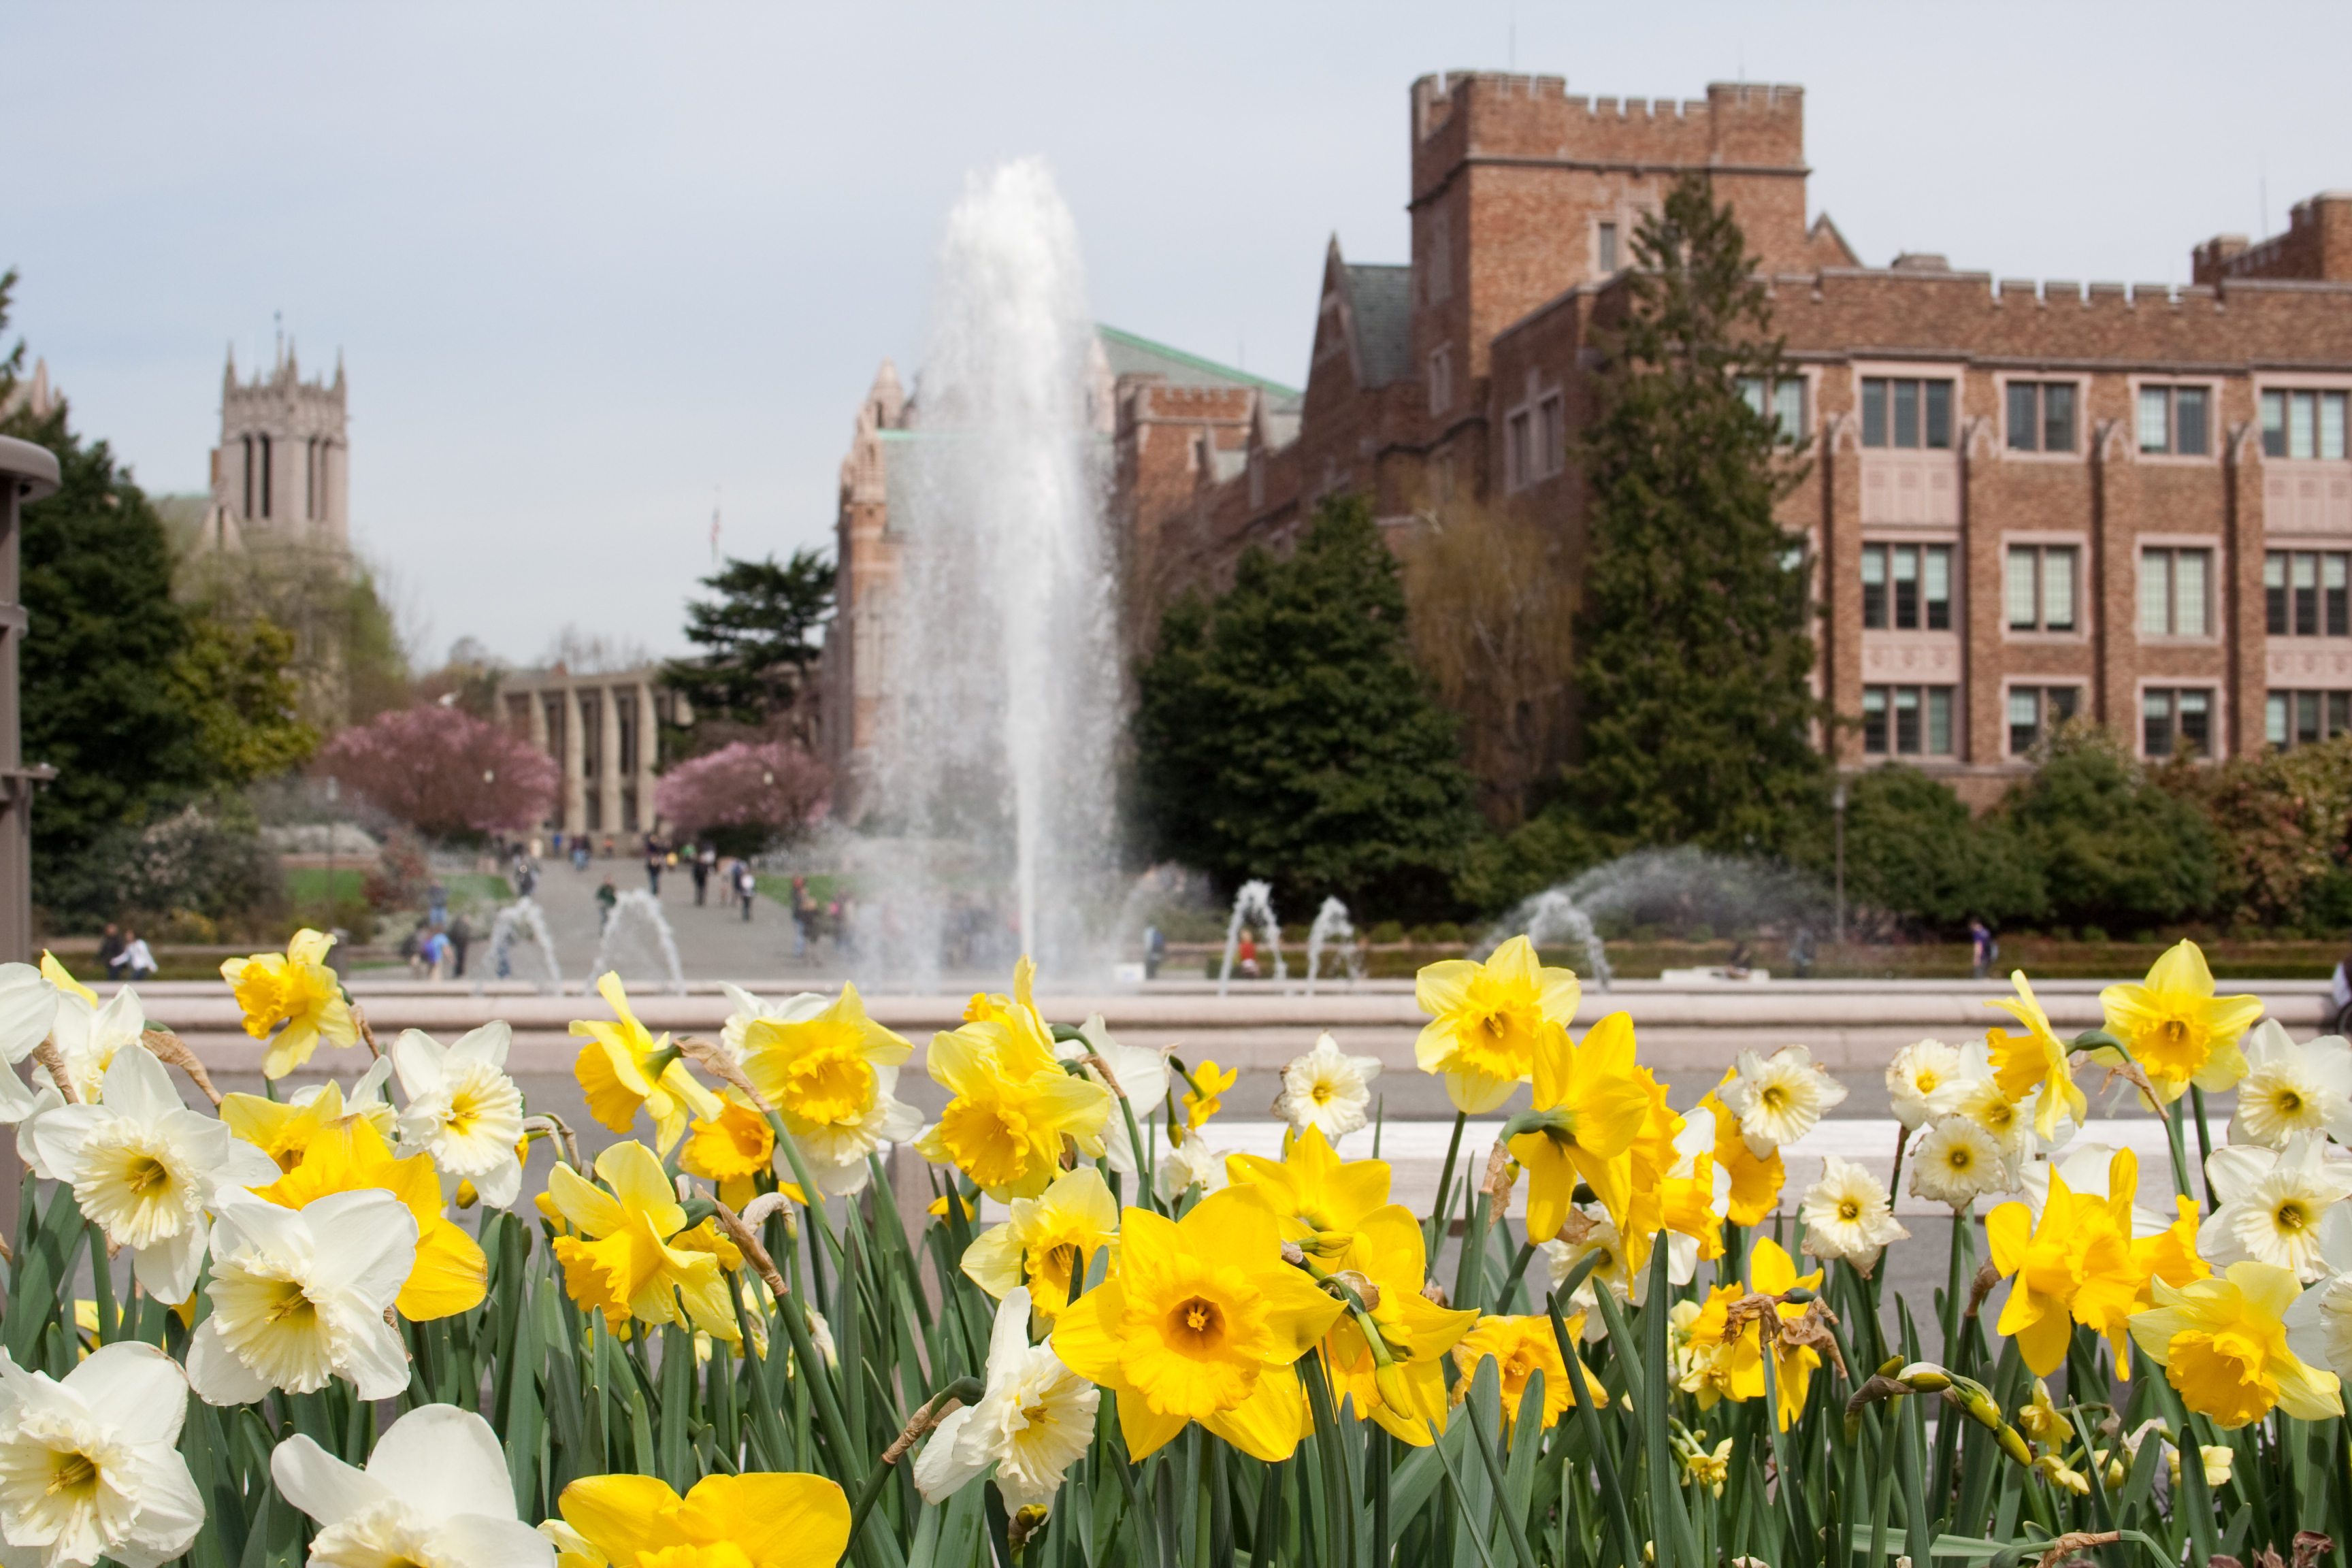 In the foreground are yellow flowers. In the distance is a water fountain and a row of university buildings.